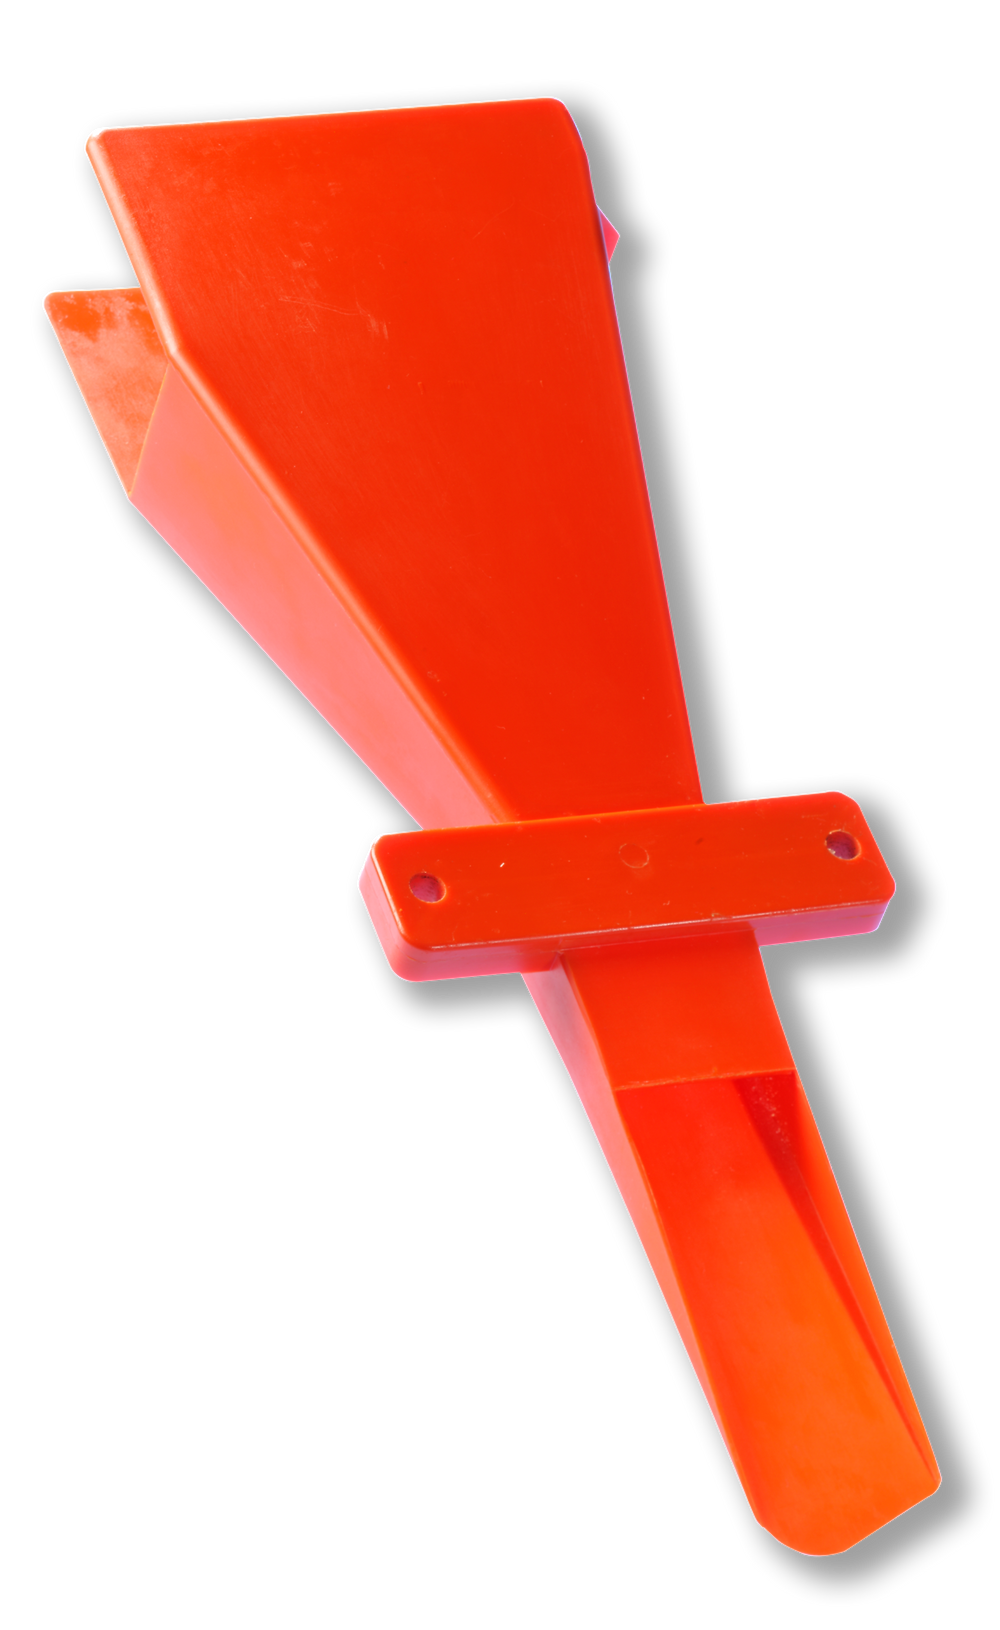 Second generation, a polyurethane molded funnel.